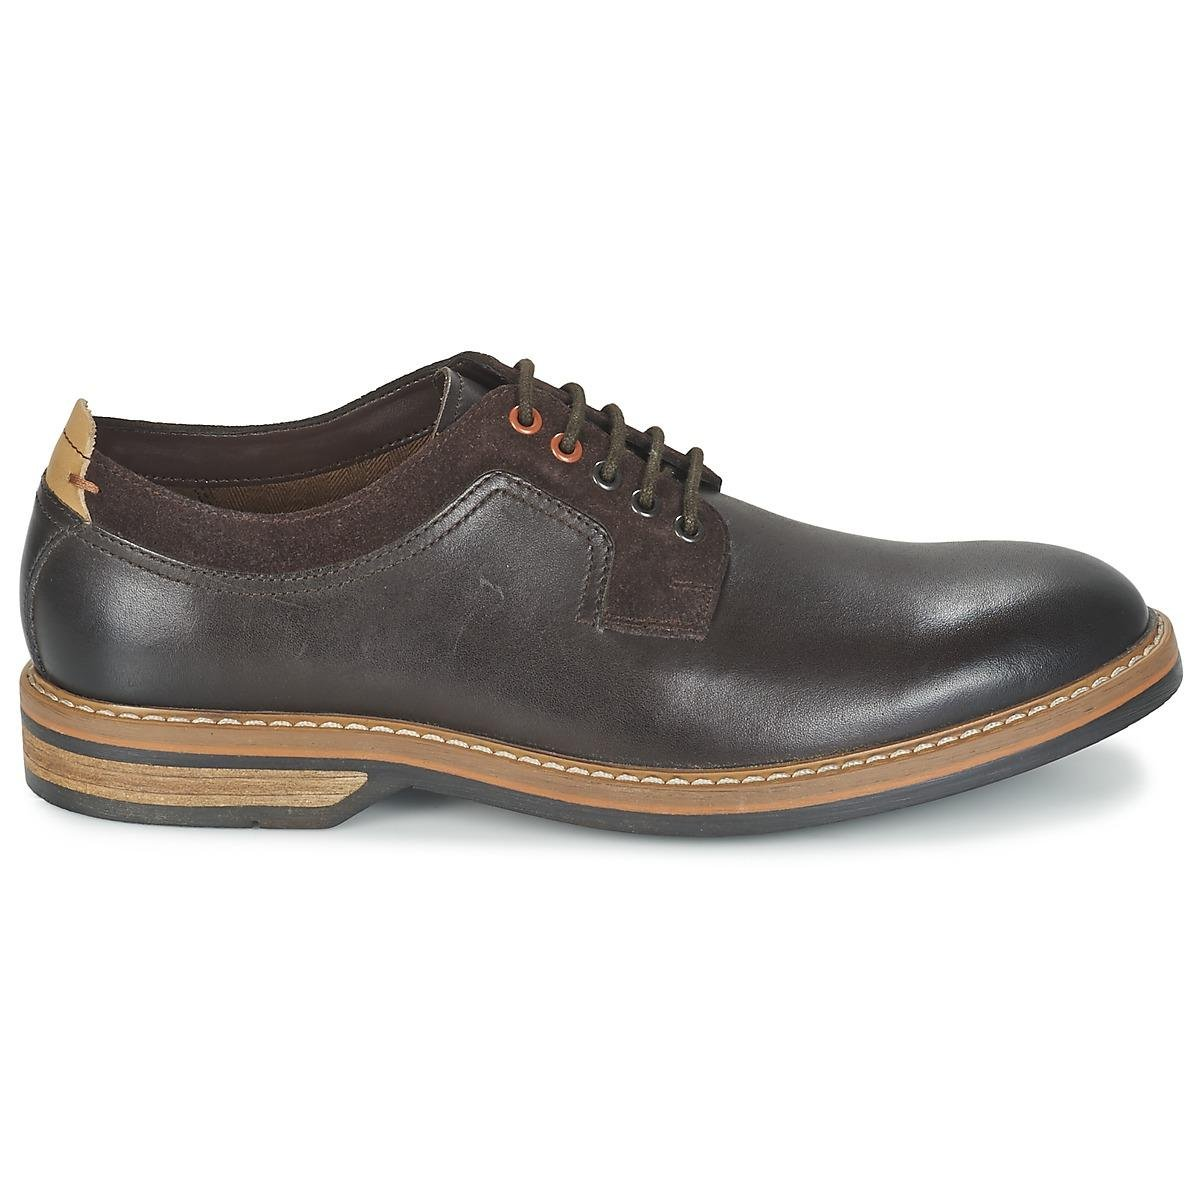 Clarks Leather Pitney Walk Men's Casual Shoes In Brown for Men